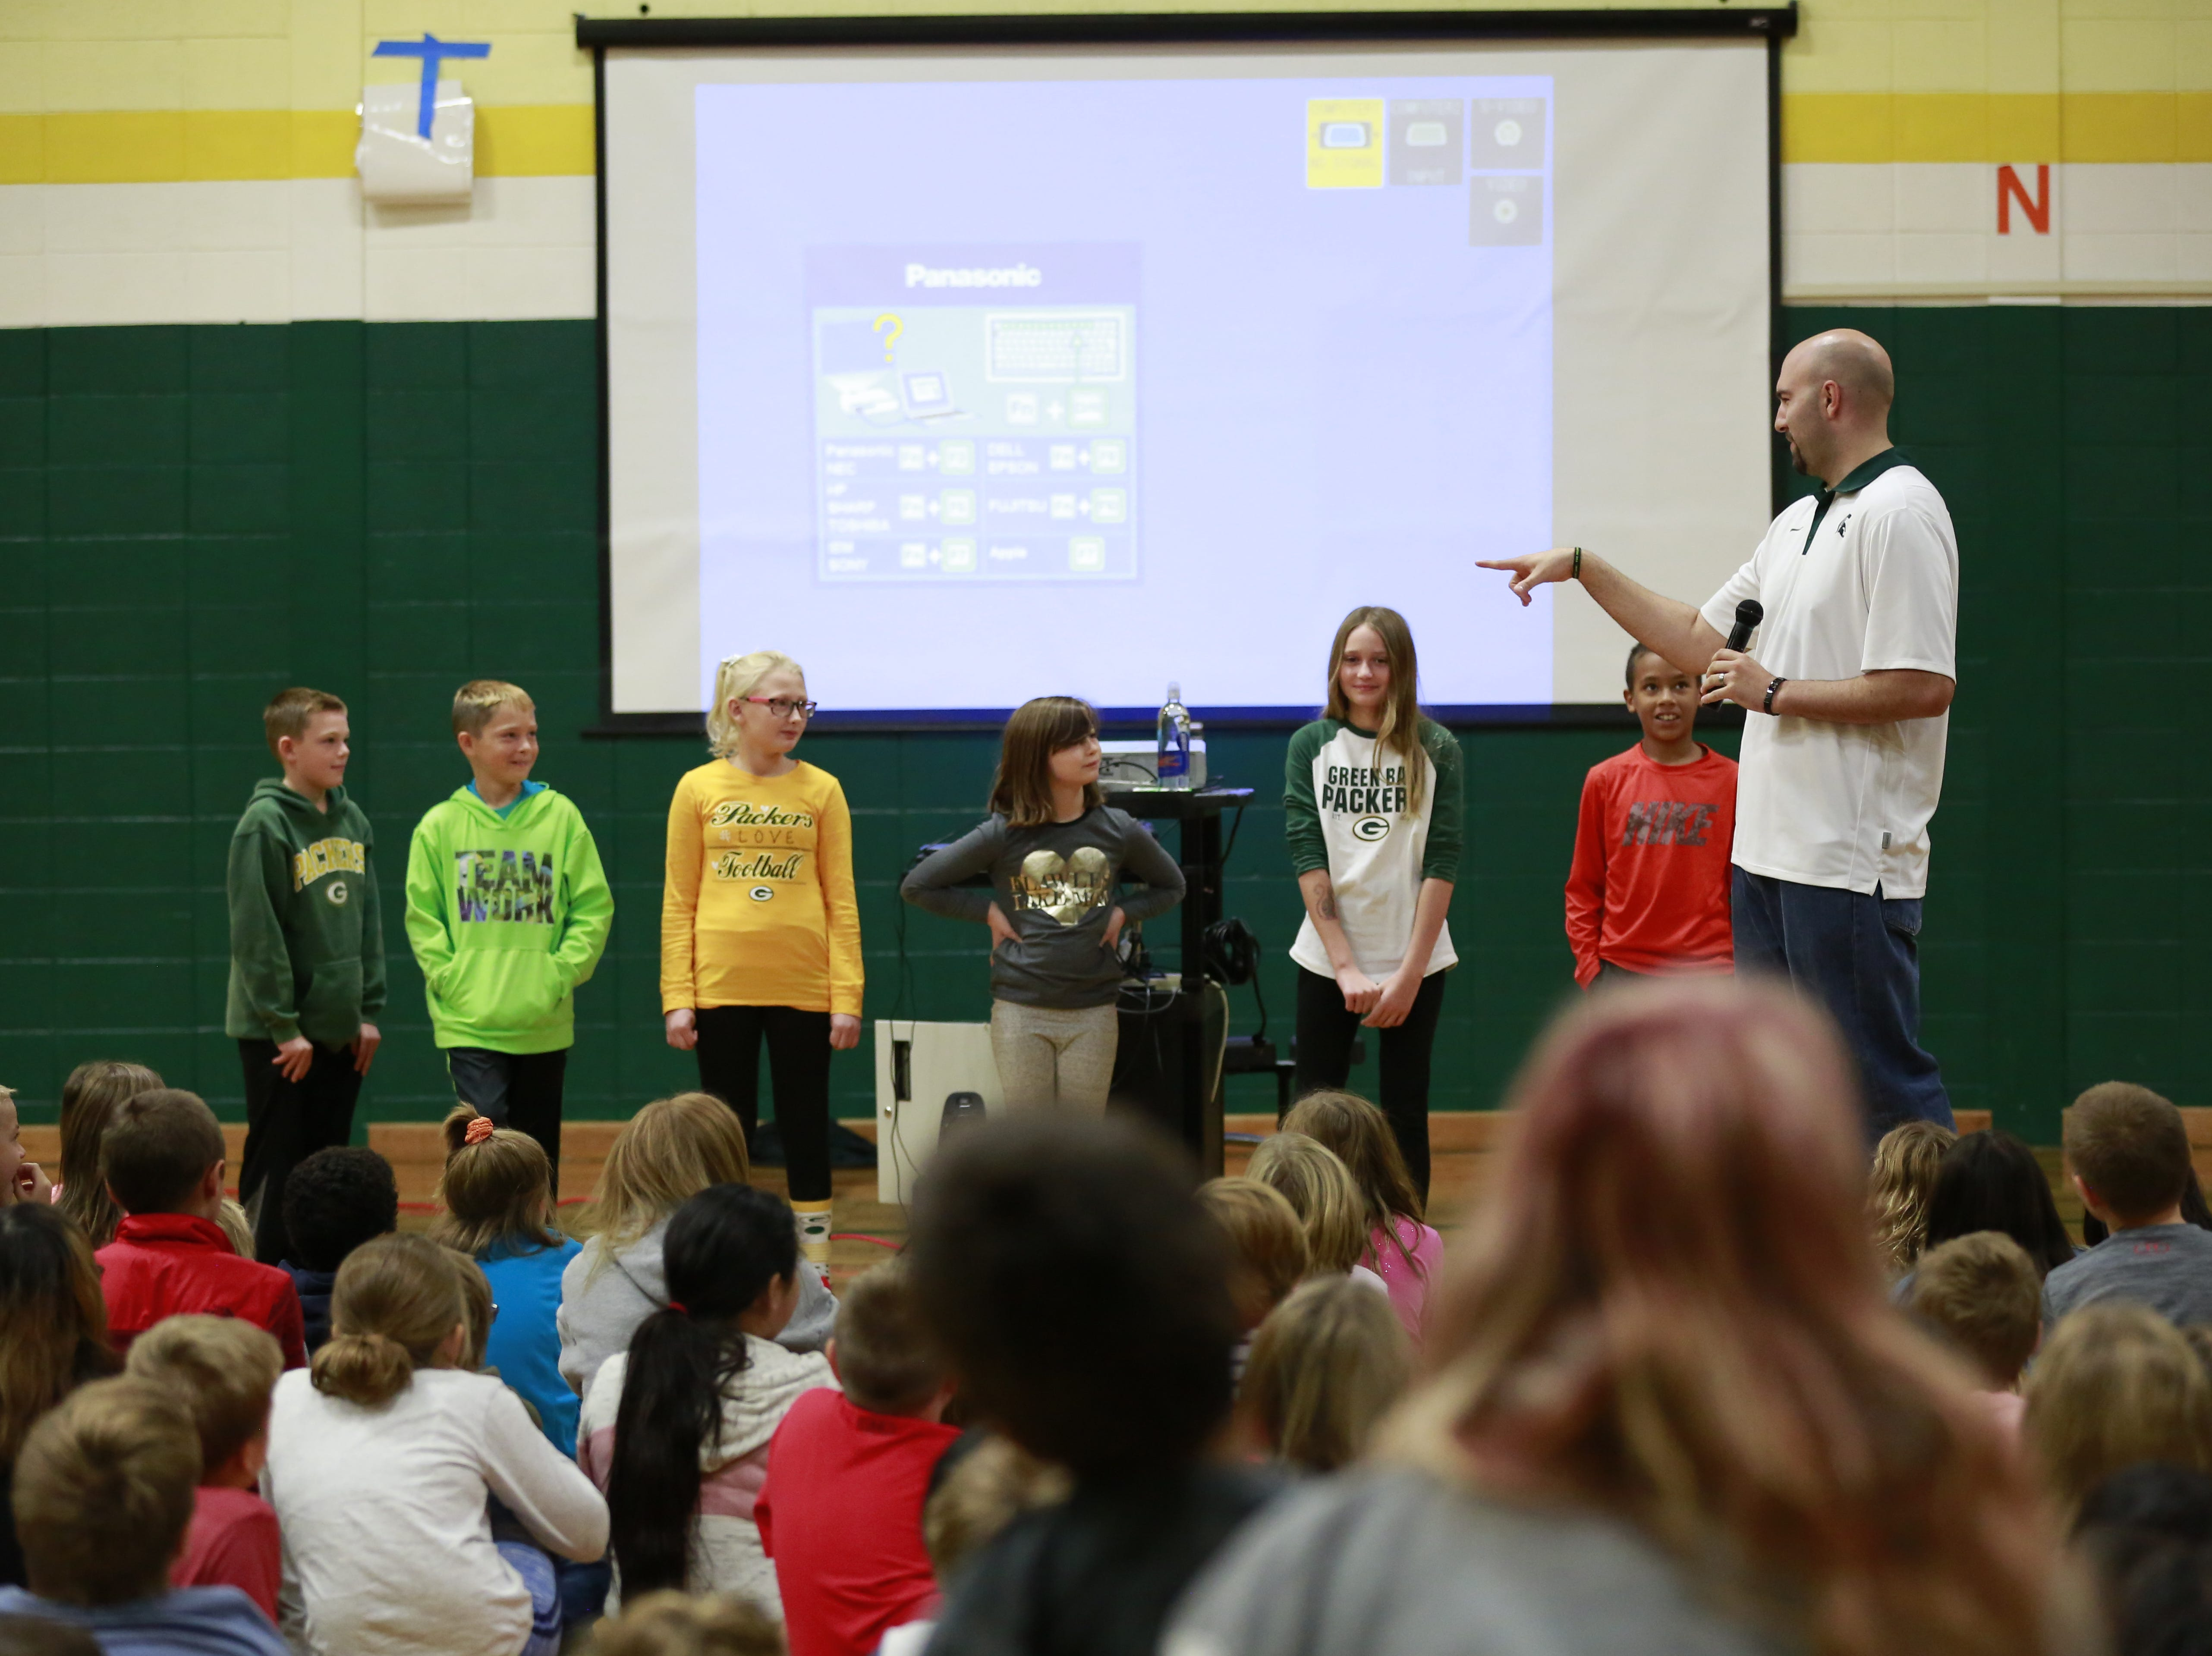 Former MSU basketball player Anthony Ianni lines up students for an activity Monday, Oct. 15, 2018, as part of the Anti-Bullying Relentless Tour to Visit Wisconsin at Weston Elementary School in Weston, Wis.